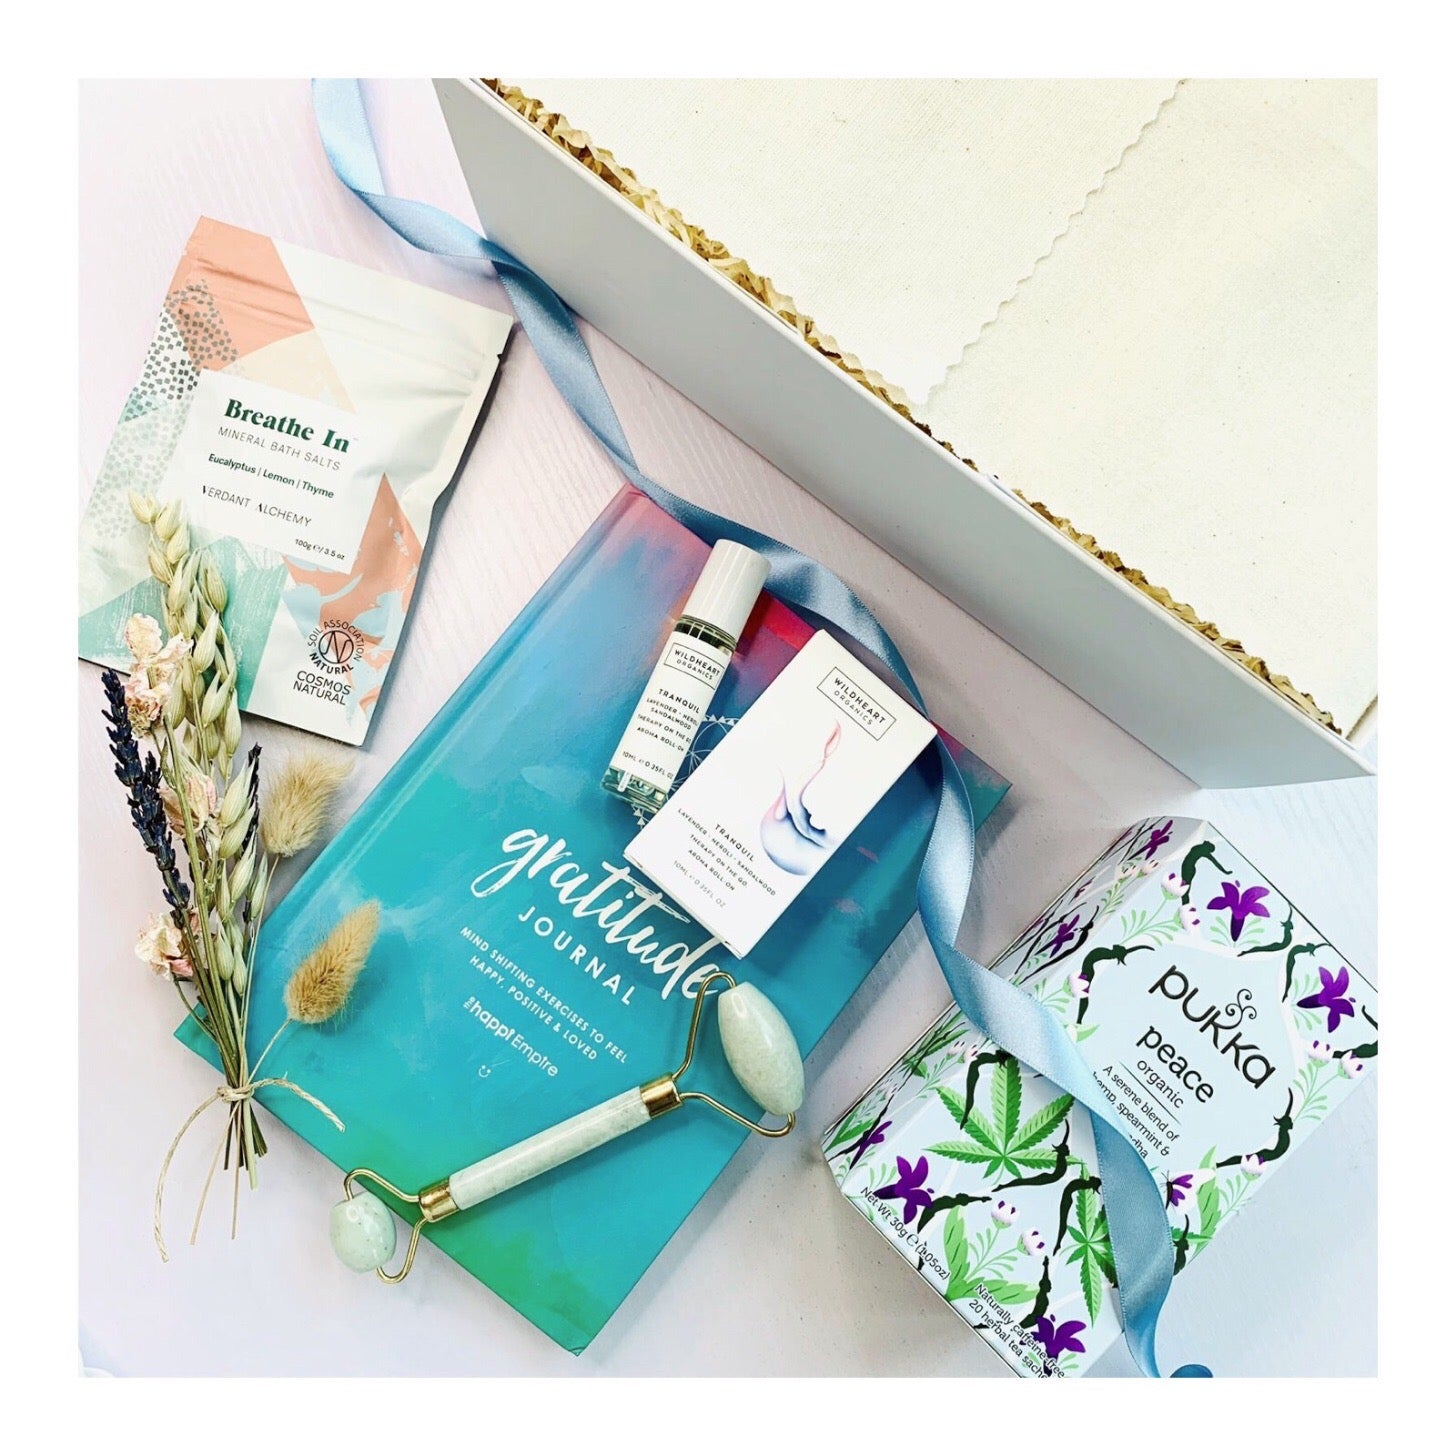 Serenity Deluxe Gift Box from Amala Curations, including Happi Empire Gratitude Journal